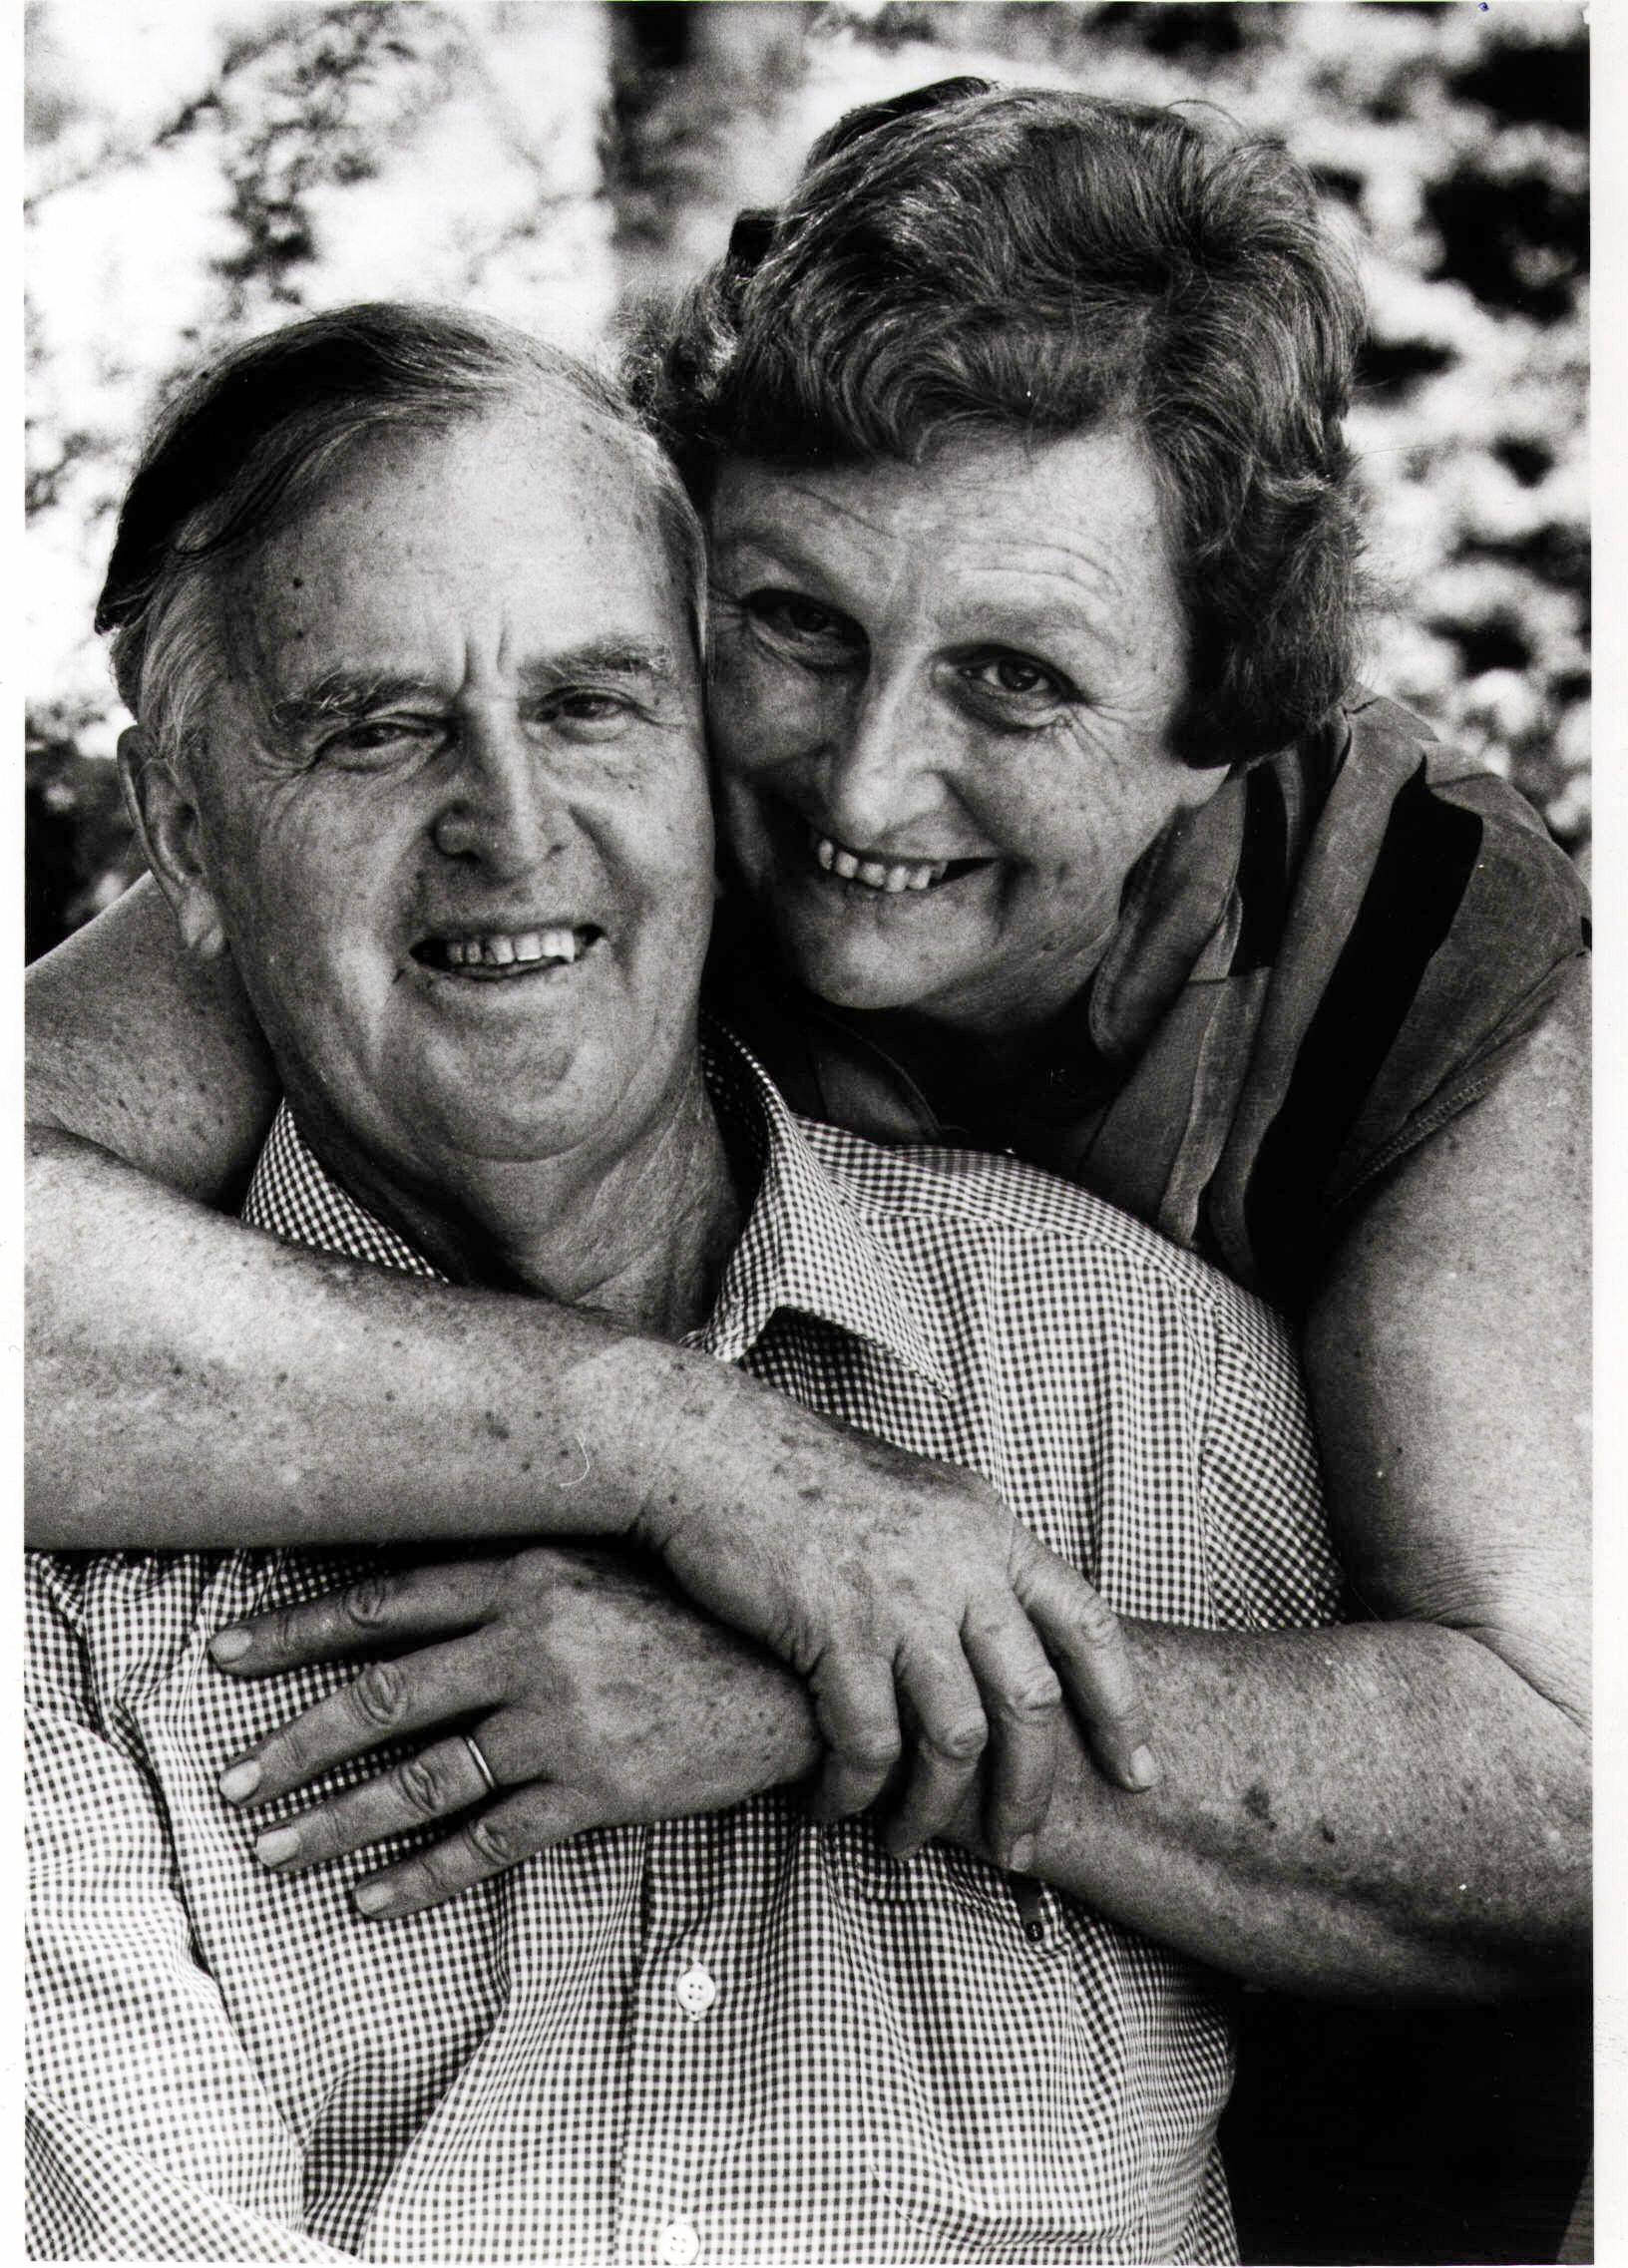 Qld politician Sir Joh Bjelke-Petersen with wife Florence (Flo) on his 75th birthday at their home in Kingaroy, Qld Mar 1986. p/ 1980s